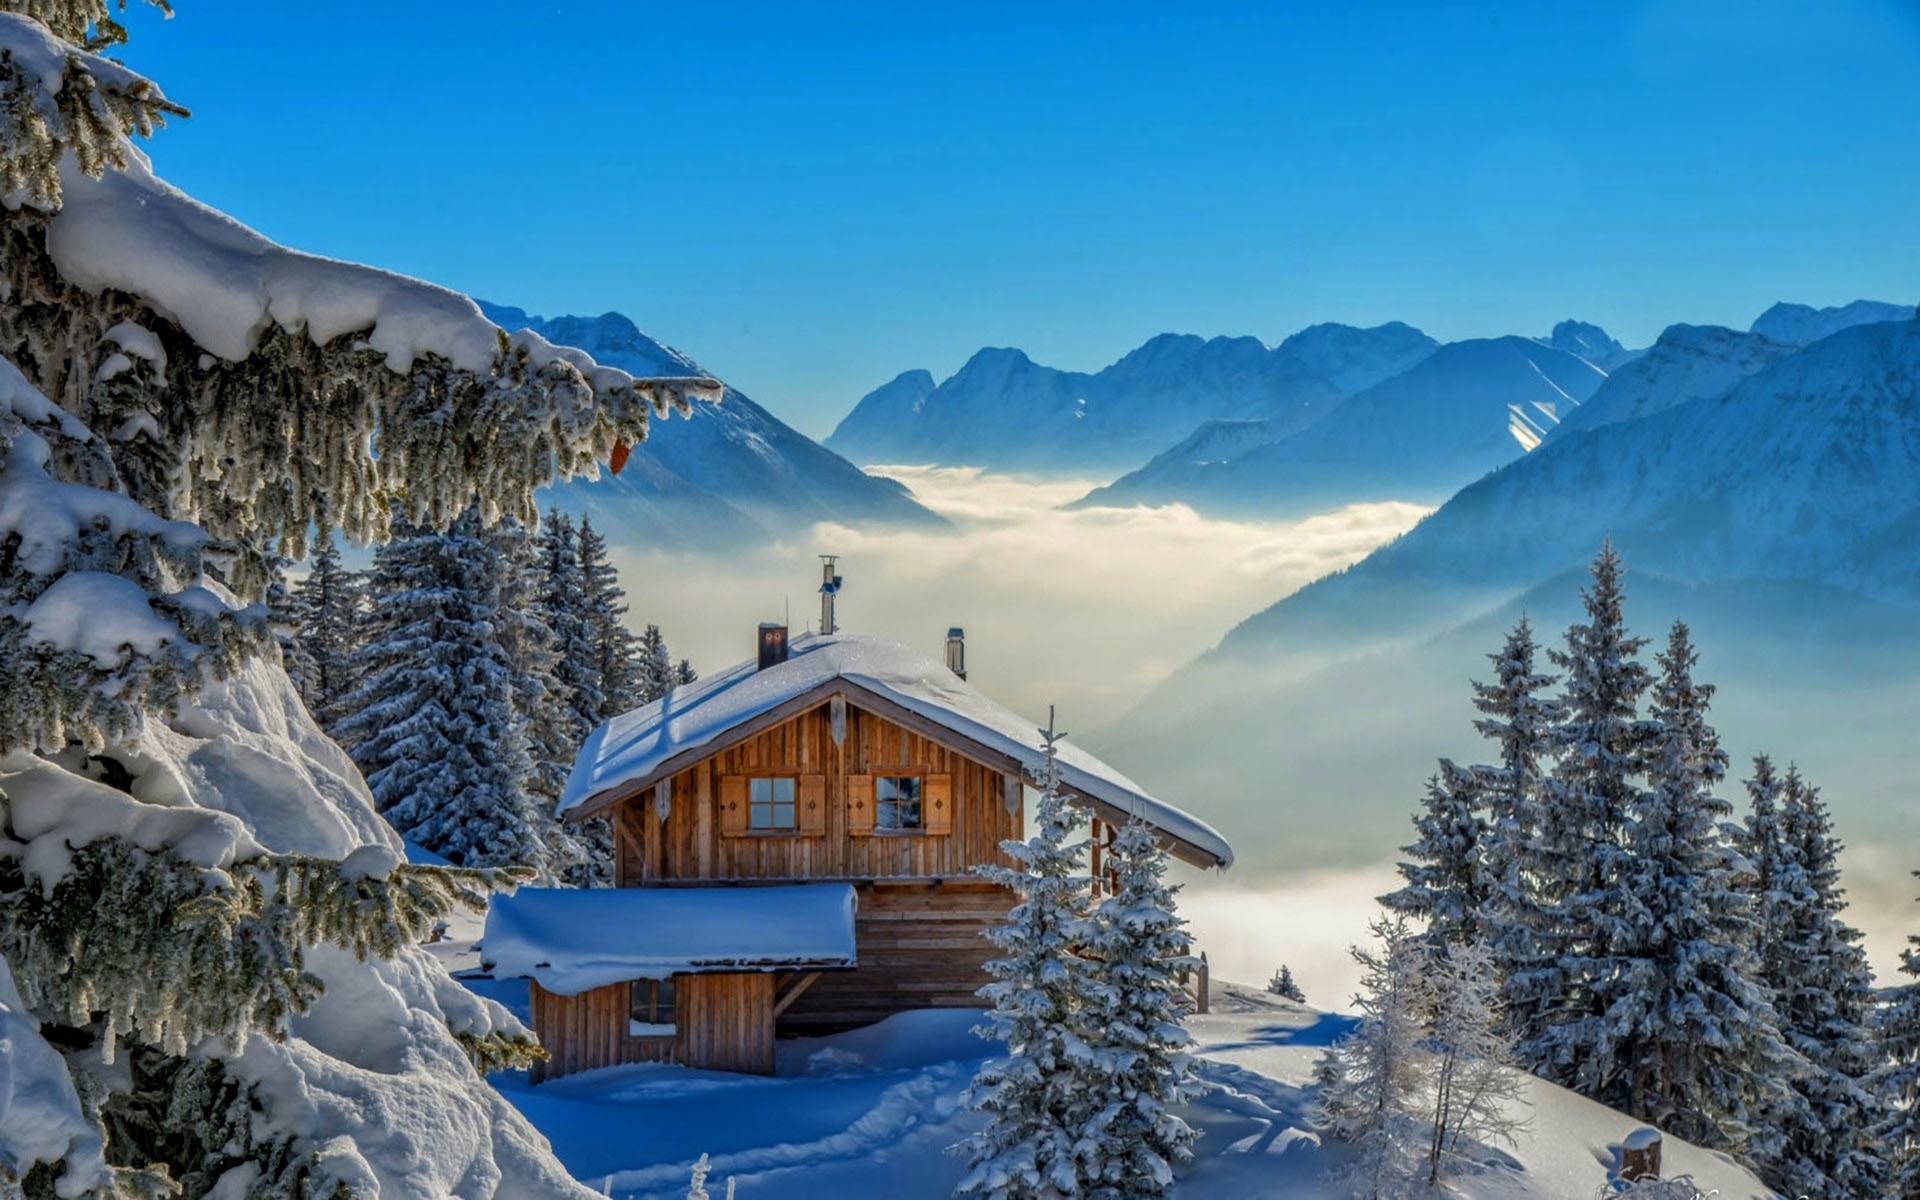 Cabin In The Winter Mountains HD Wallpaper